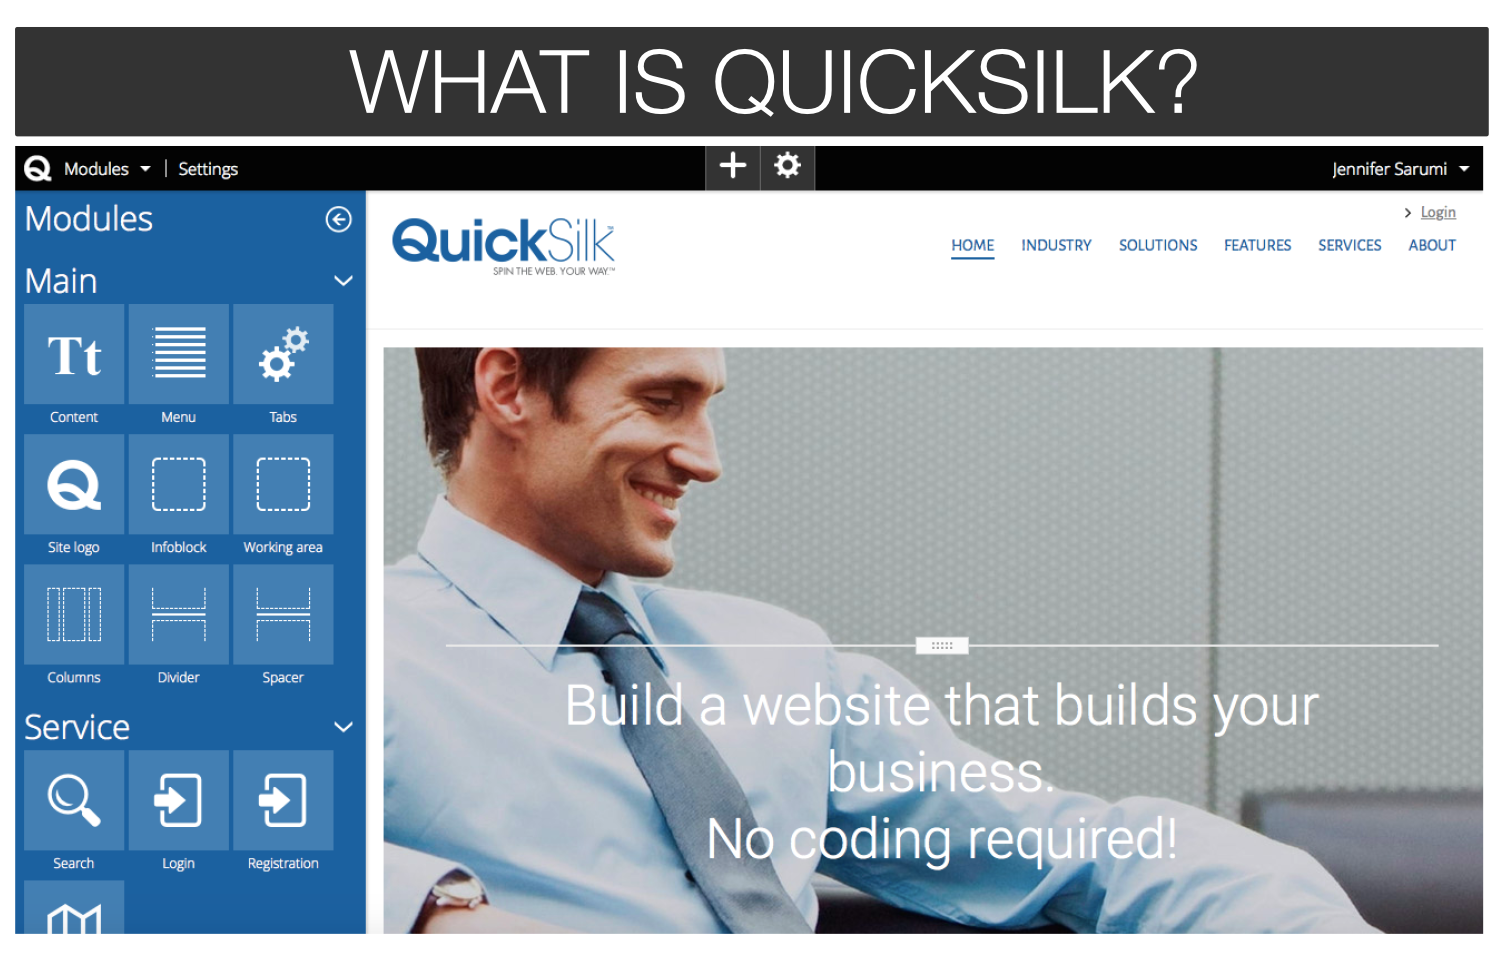 Quicksilk